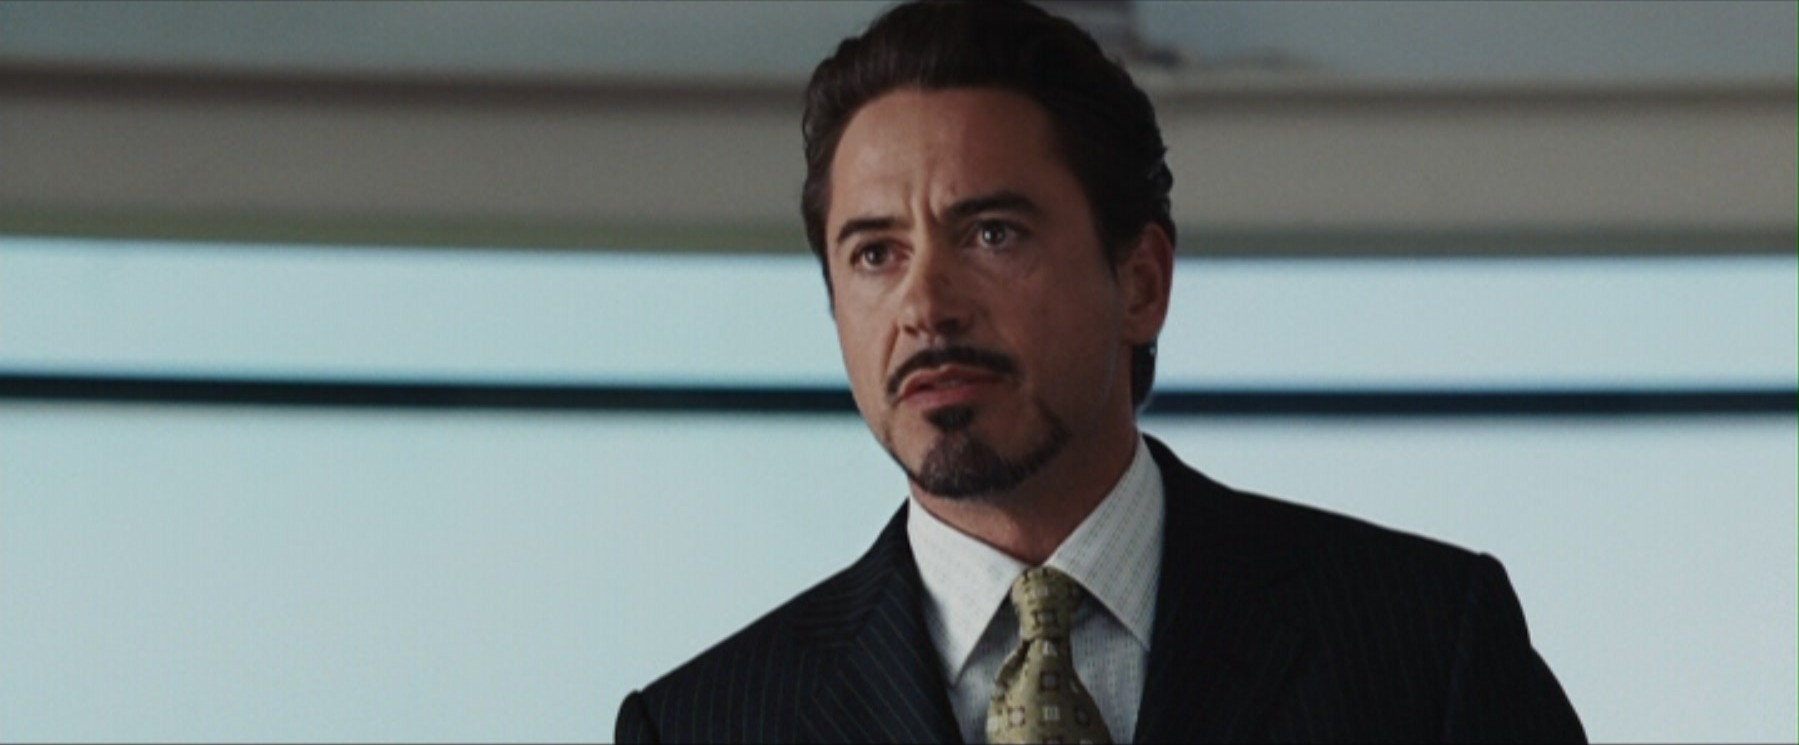 tony stark images hd - photo #11